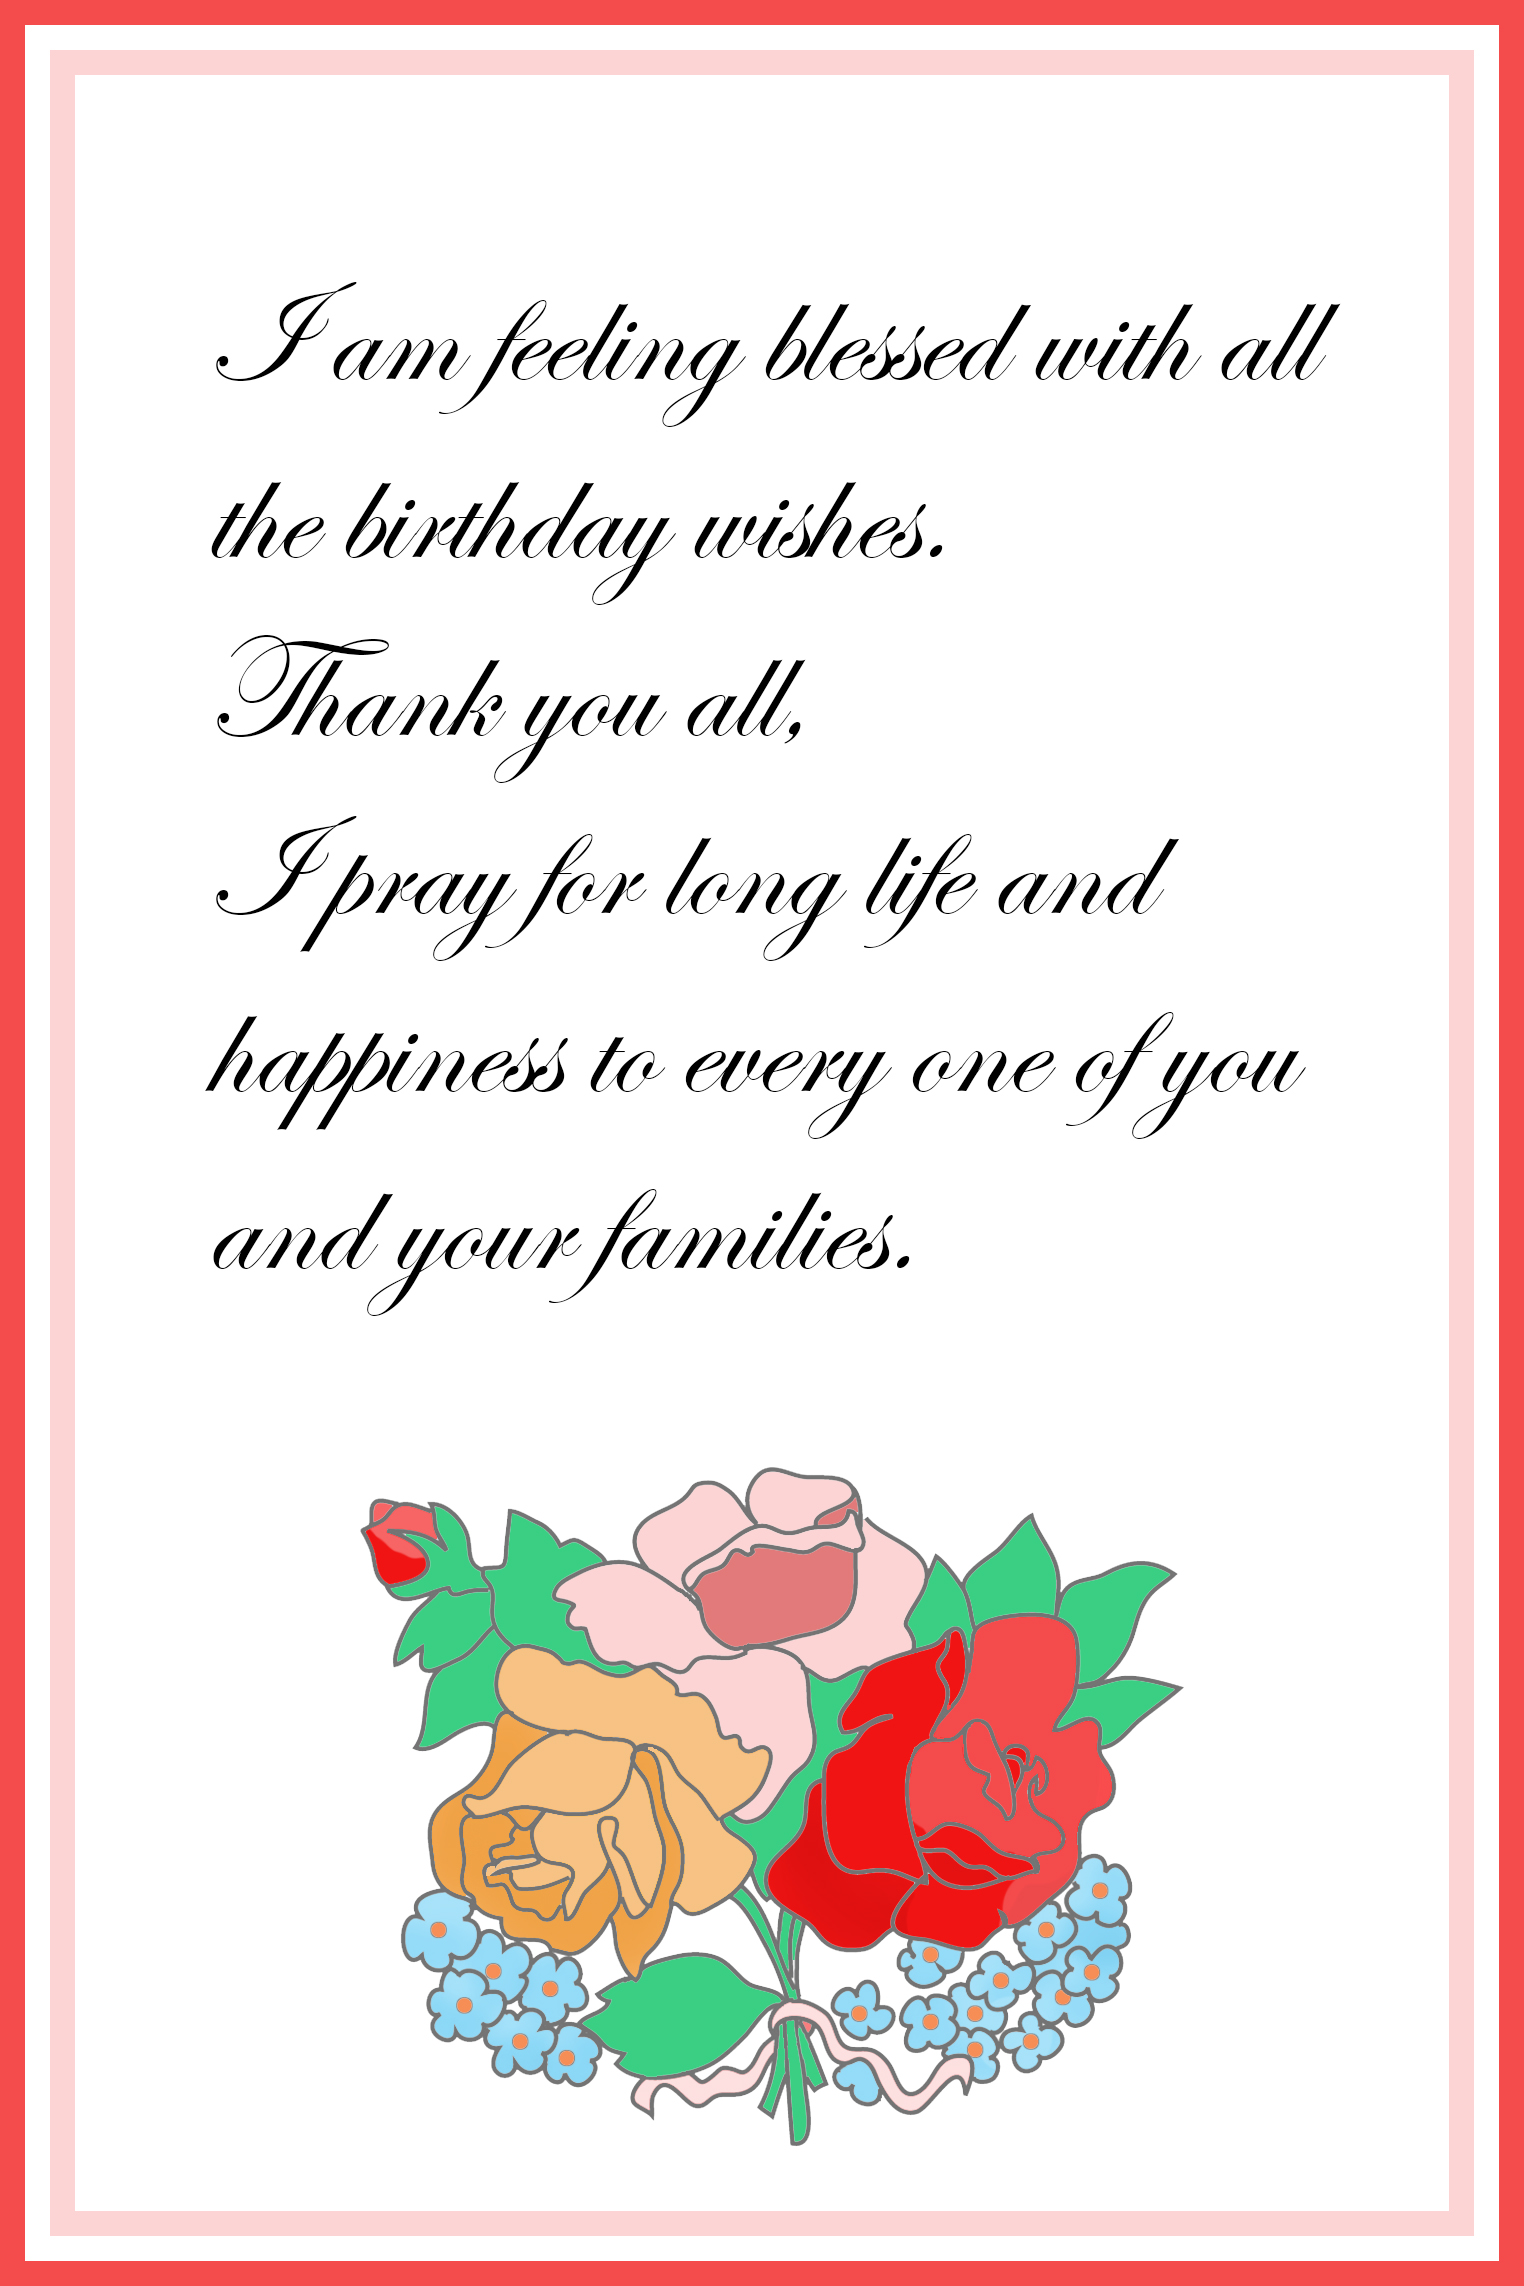 Printable thank you cards free printable greeting cards birthday thank you card s birthday thank you card with message kristyandbryce Images